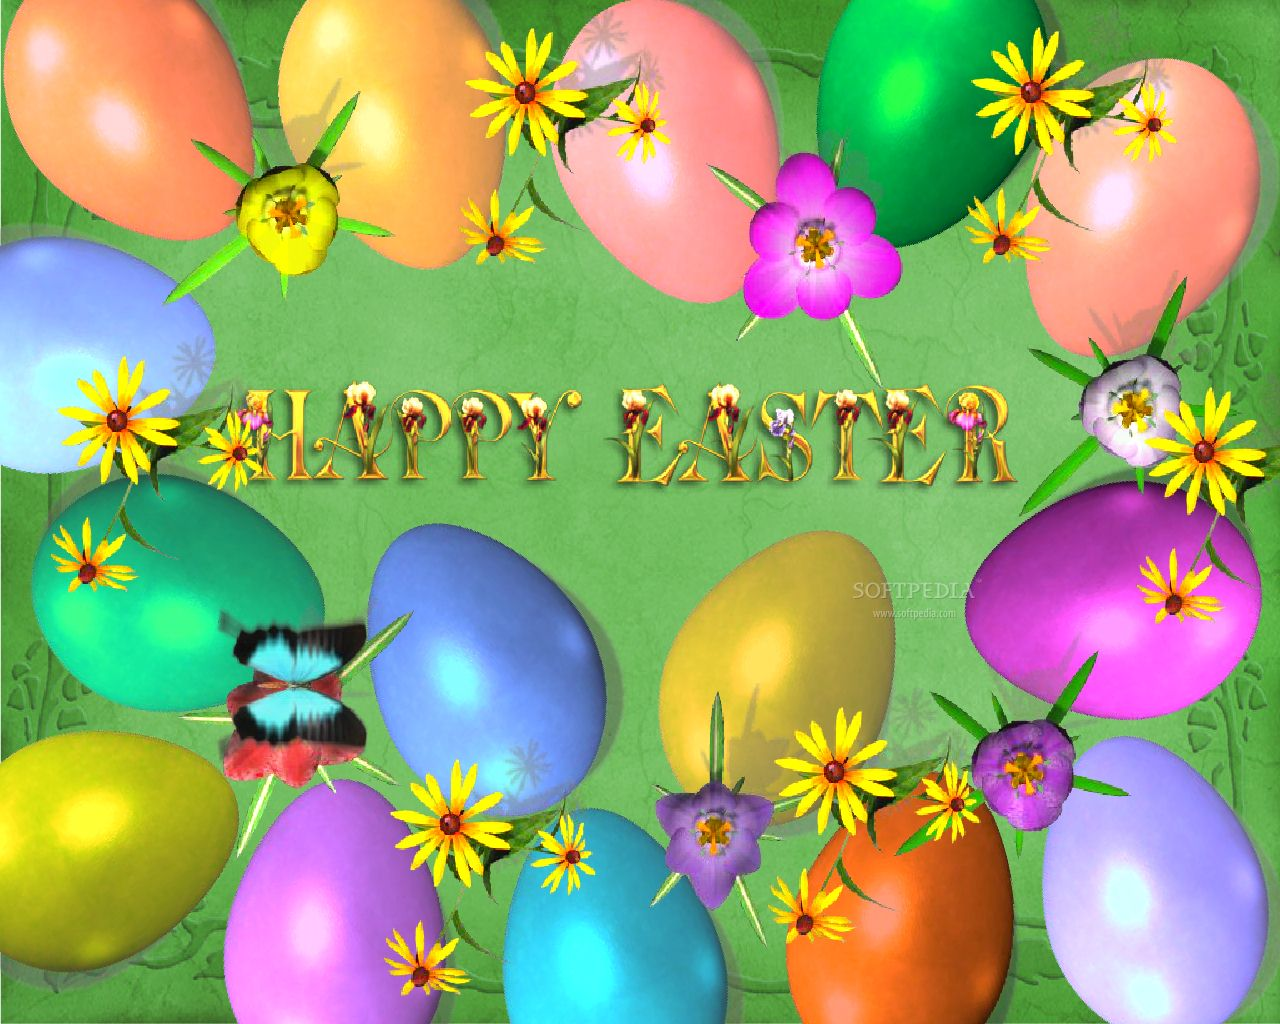 easter animated wallpapers wide screen wallpapers cute bunnies cute rabbits cute animals easter